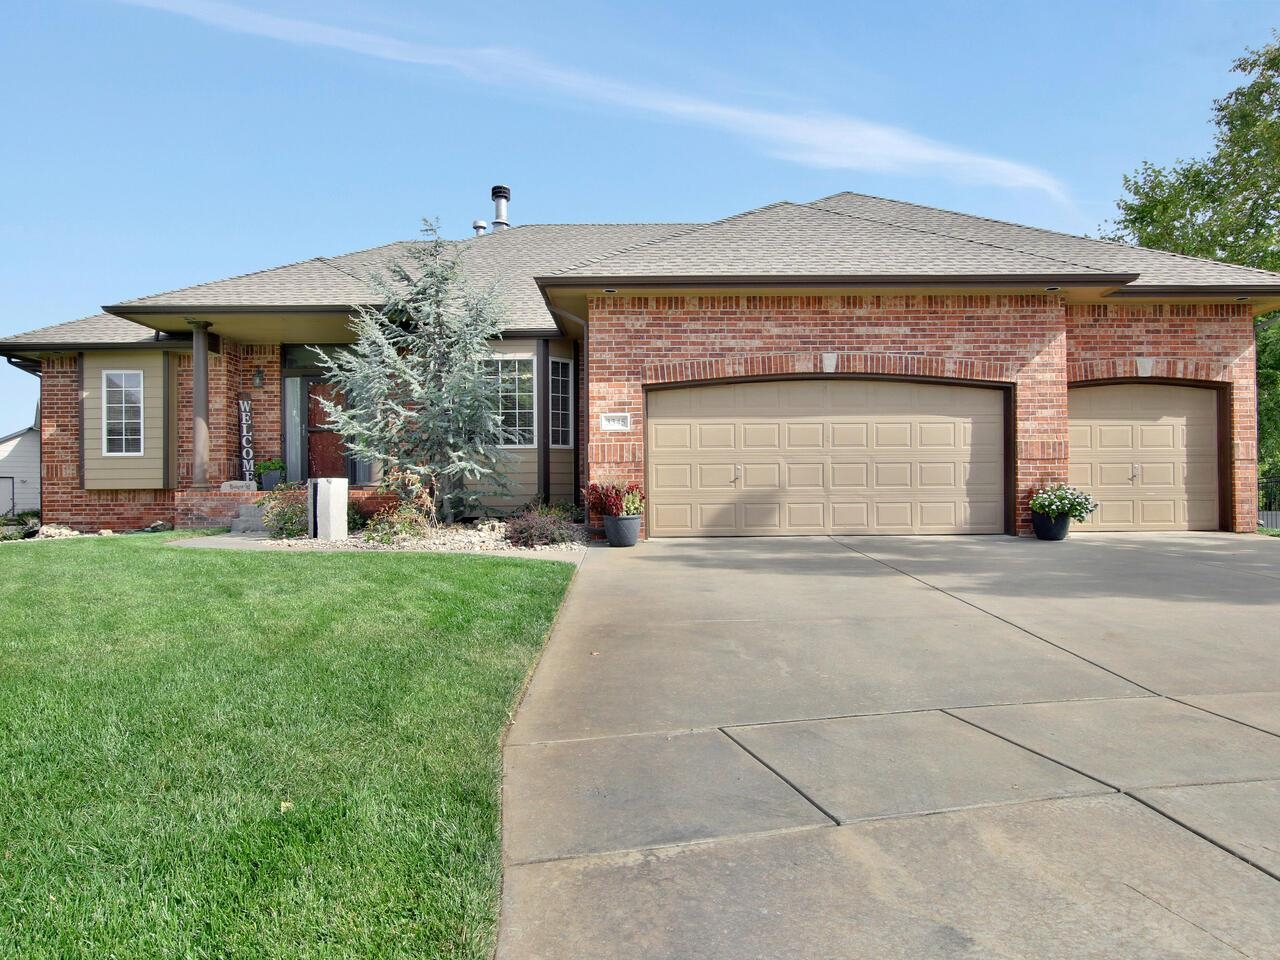 Located in Desirable, In-Demand Ridge Port Addition!  This Ranch Home is Move-In Ready.  Freshly painted, Hdwd Flrs, & 10ft Ceilings.  Spacious Living Room featuring corner FP.  Gas Log FP is 2-way shared with the Frml Dining (which could also be a great den, office or music room).  Kitchen offers a Walk-In Pantry, Stainless Steel Appliances, Tile Topped Eating Bar.  Split Bdrm Plan.  Master Suite is Nice-Sized with Vaulted Ceiling, Bay Window, Walk-In Closet, Mstr Bath, & Private Covered Balcony.  Mid-Level WO has Huge Rec/Game Room with New wood laminate flrs, Wet Bar & Brick WBFP with insert & blower.  Bedroom #4 with Hollywood bath has walk-in closet off the bath.  Additional bonus room or office in the Bsmt.  Extras Include: Concrete Safe Room, Full-Length Patio New in 2020, High Efficiency HVAC New - 2019, New Roof & Gutters - late October 2021.  Fully Insulated 3-car Garage with Nice Built-in Cabinets & Garage Door Opener New - 2020.  Huge 1/3 Acre Lot.  No Specials!!!  Ridge Port features a 45 acre Boating & Fishing Lake with Beach Area & Pool and is located in Sought-After Maize South Schools.